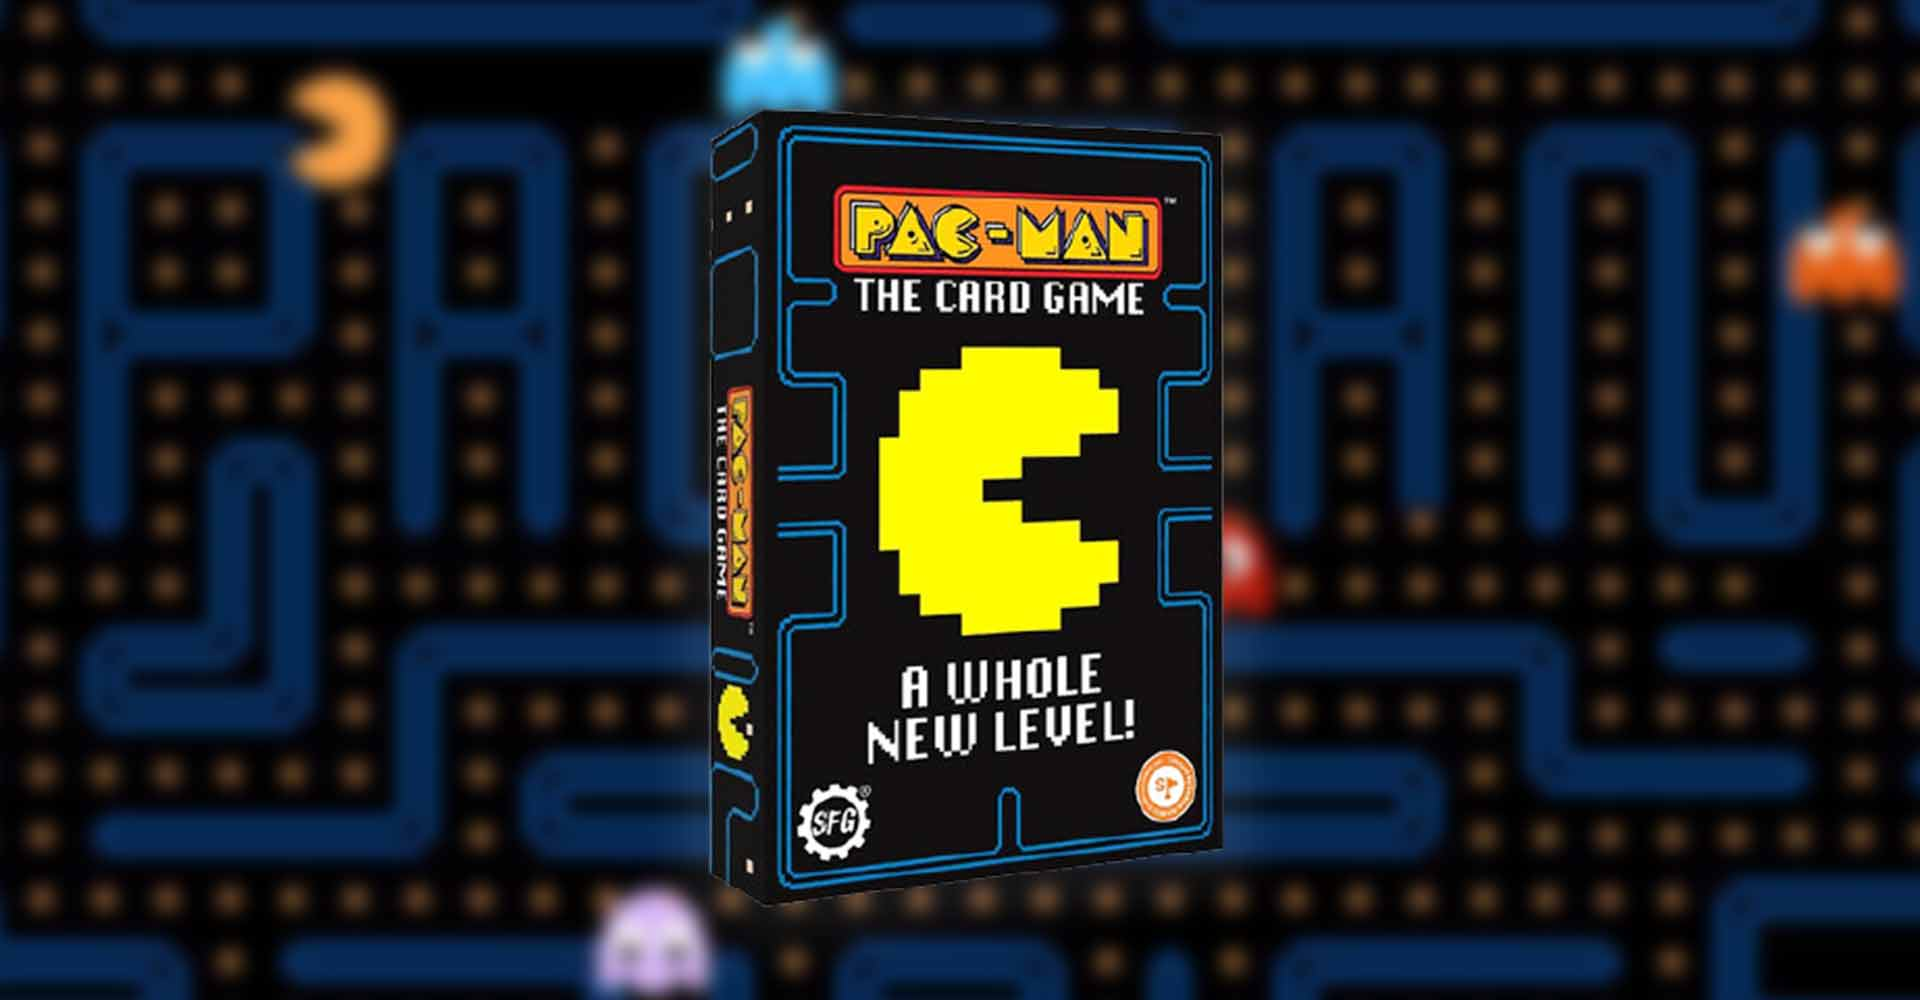 Offline: Pac-Man The Card Game